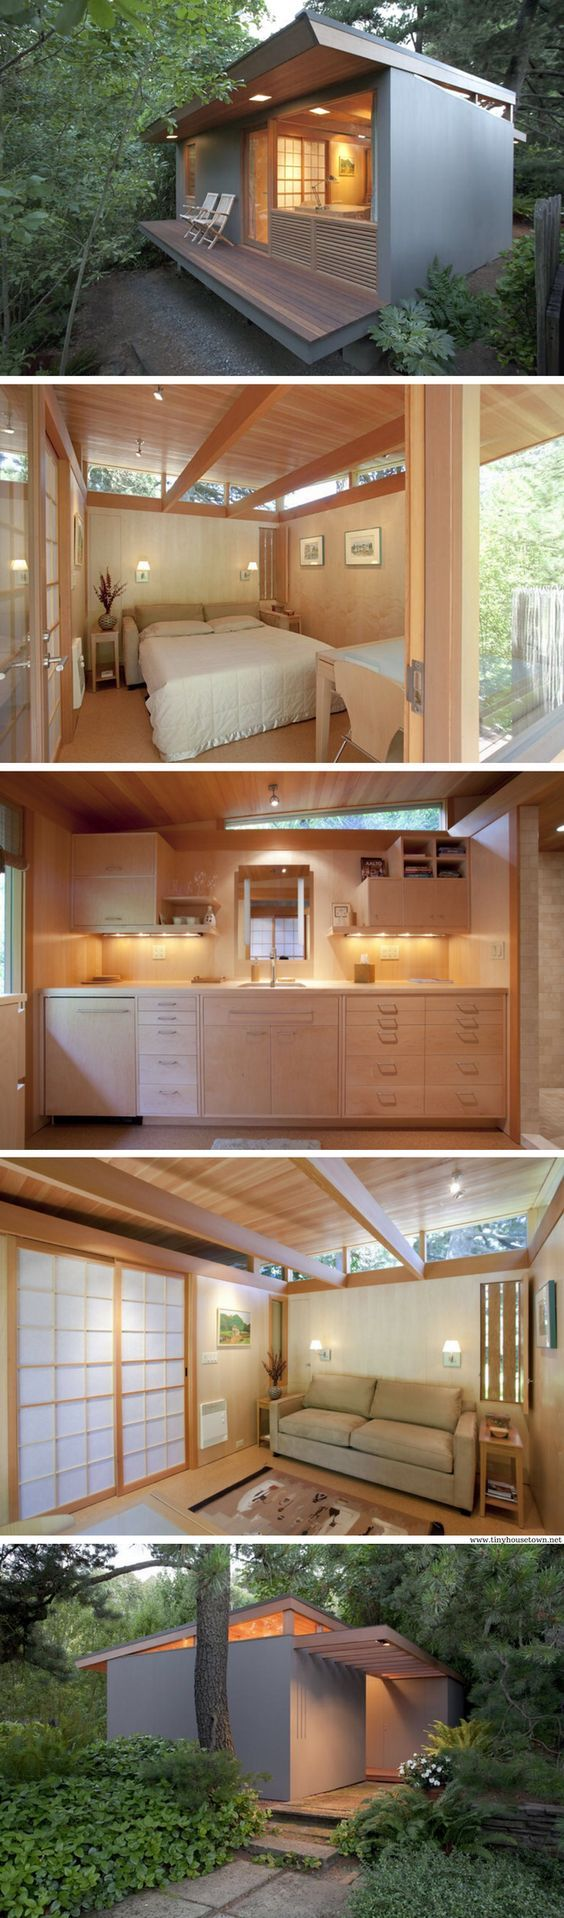 The Portland Teahouse (236 sq ft)I want this feeling in my home - The natural wood and light is expansive